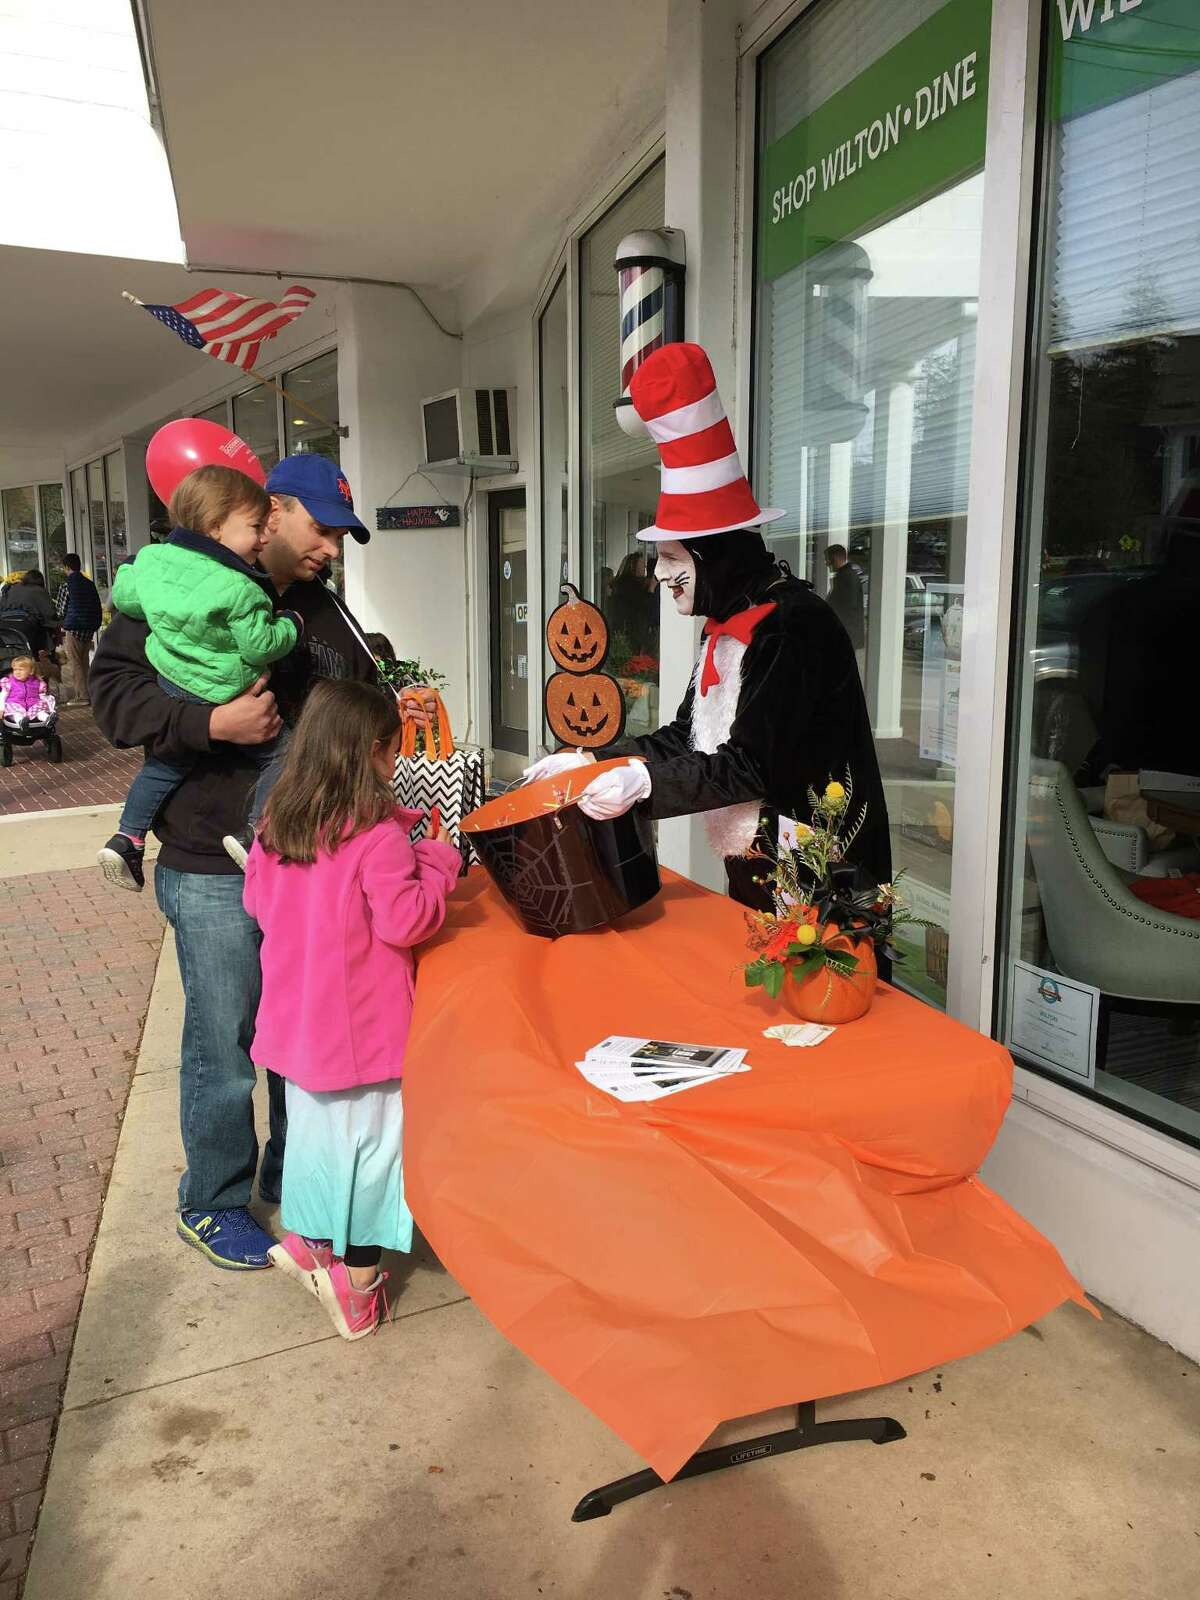 Participants from a prior HalloWeekend held by the Wilton Chamber of Commerce.